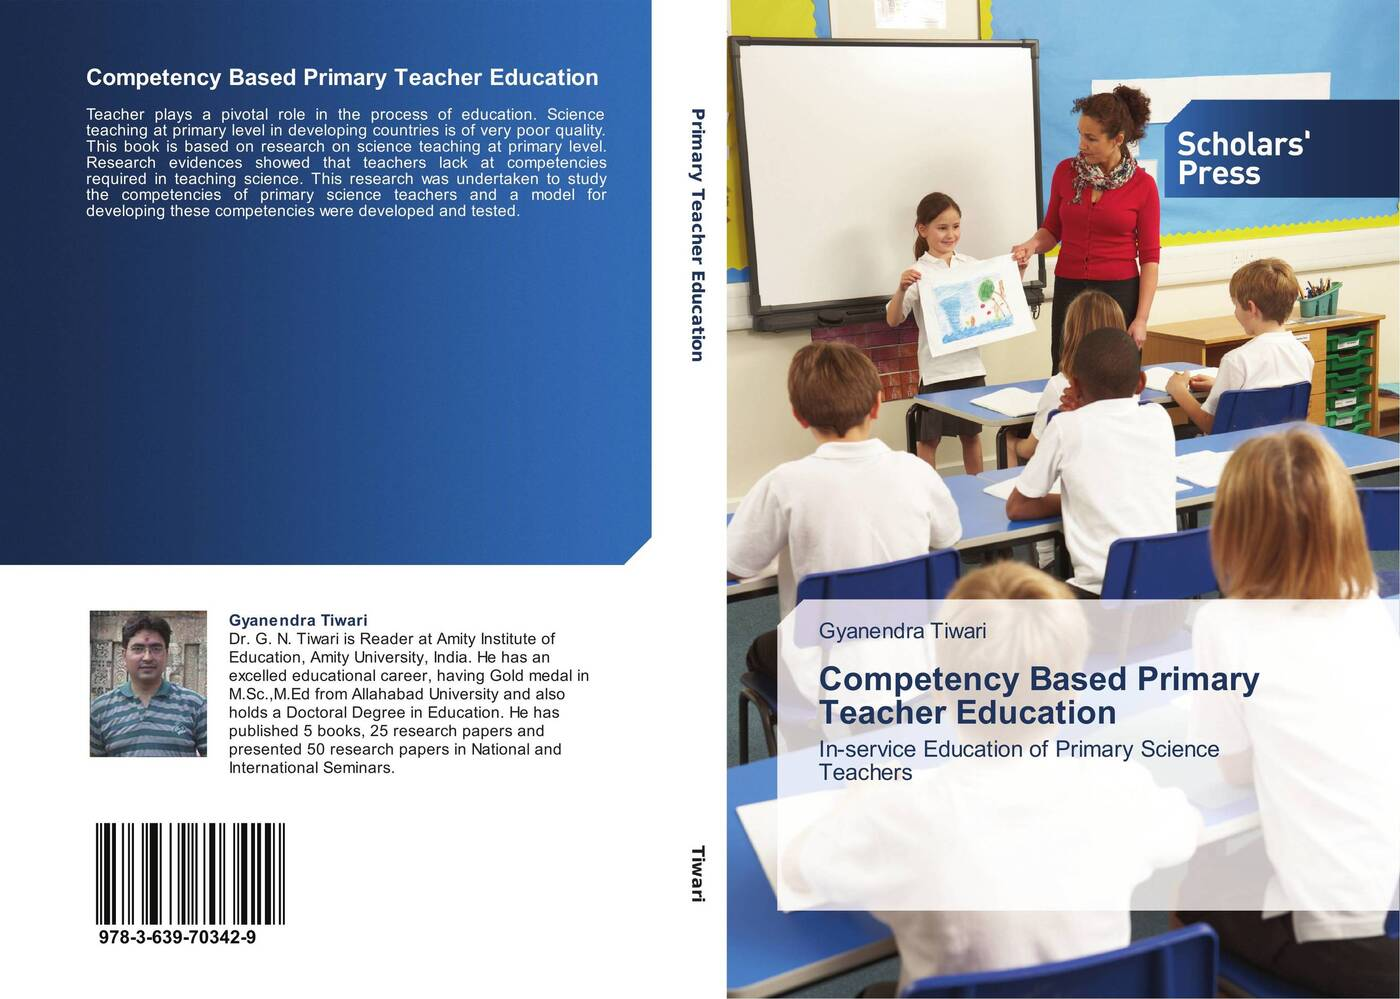 Gyanendra Tiwari Competency Based Primary Teacher Education mohamed mbarouk suleiman teachers experiences of teaching science with limited laboratory resources